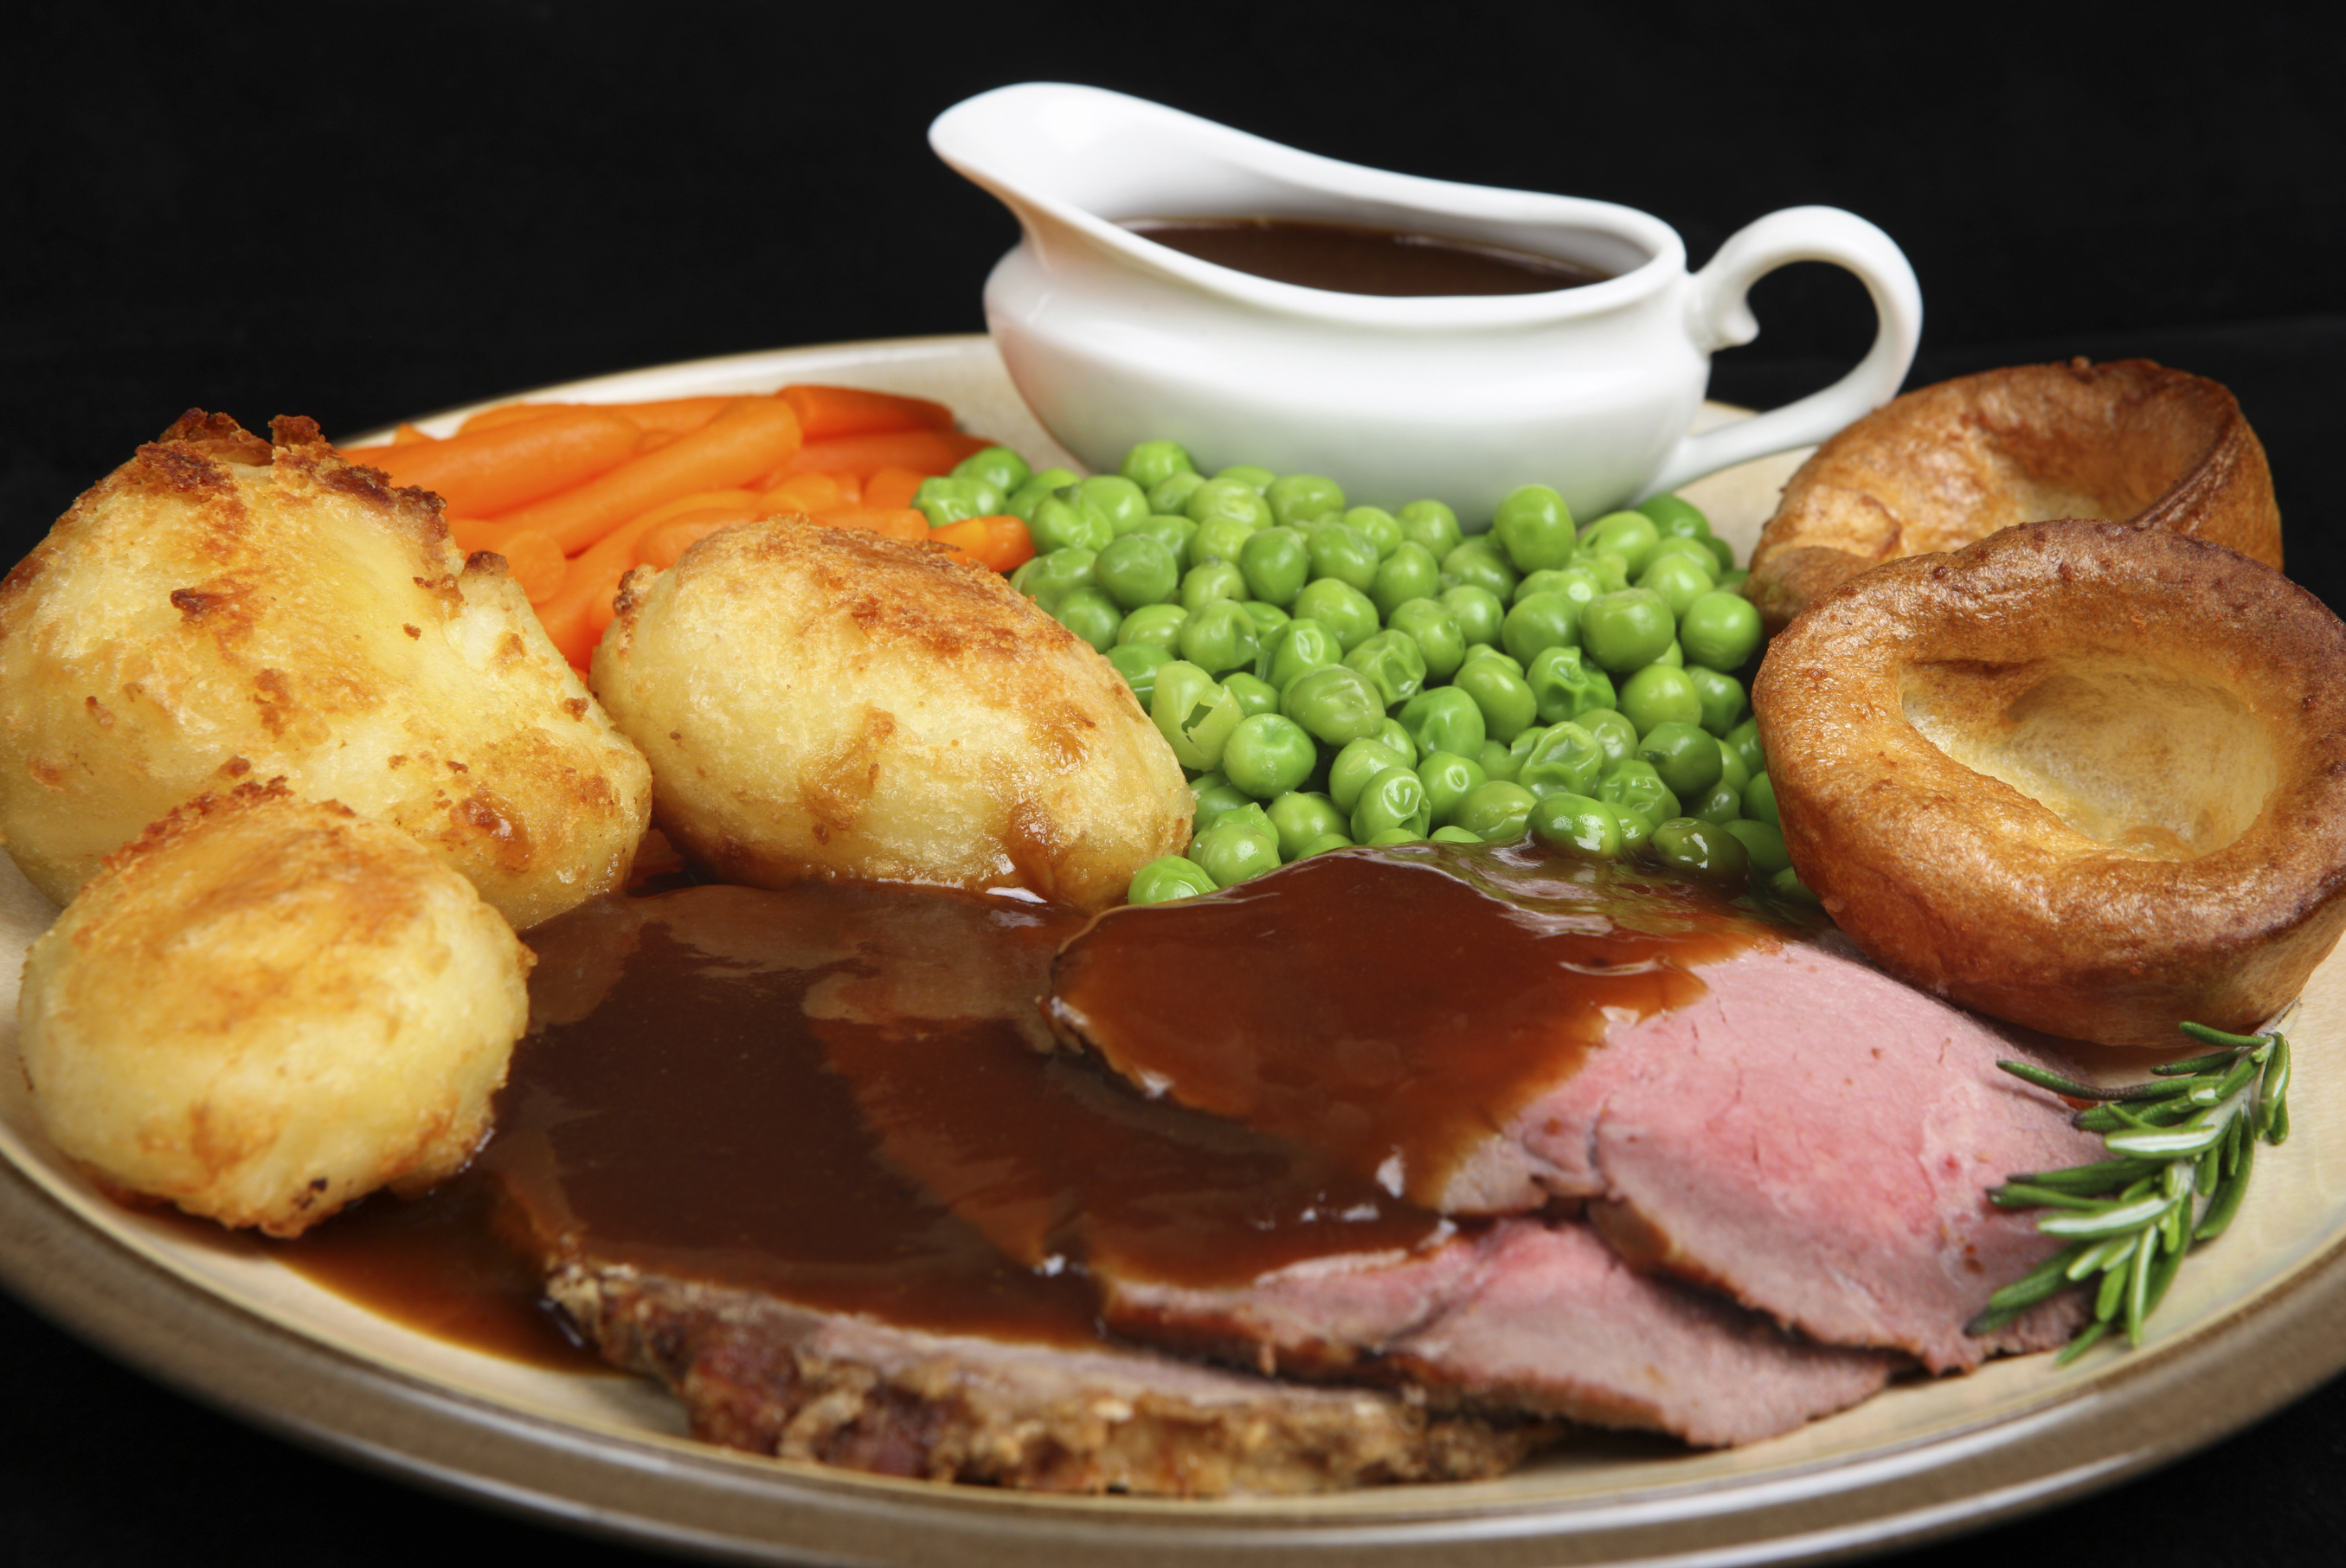 Roast beef with a side of peas and carrots